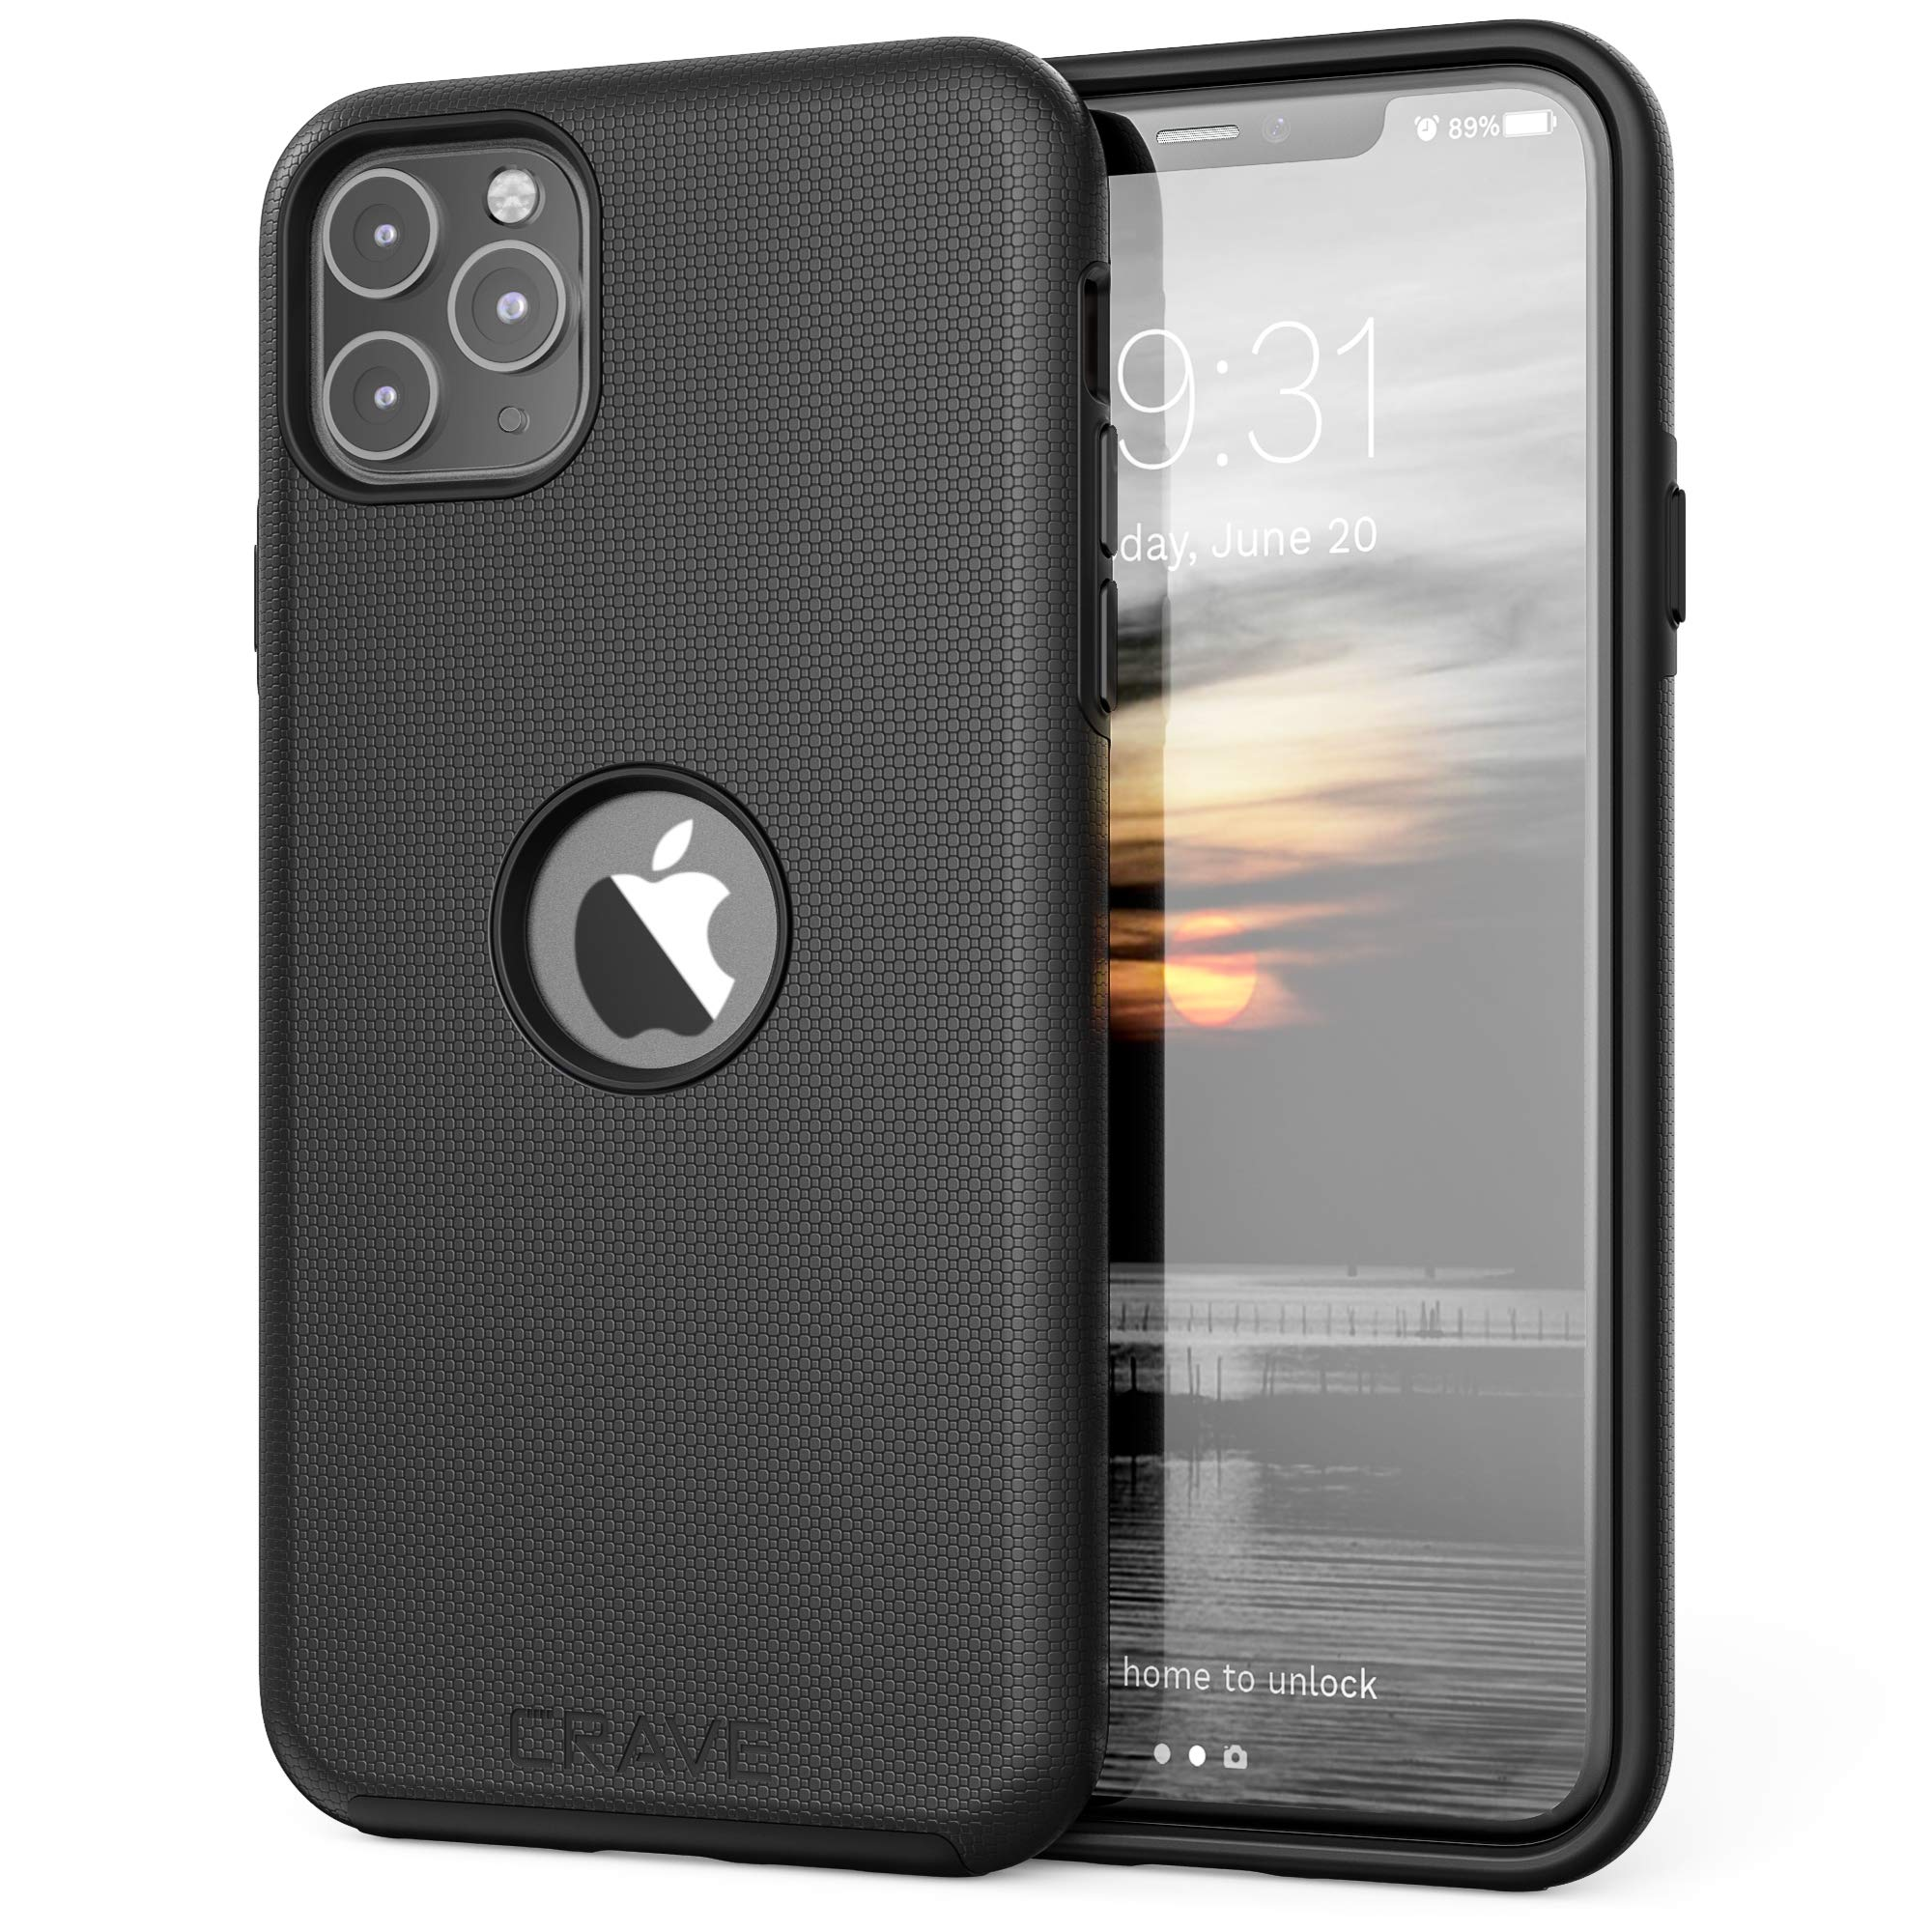 Crave iPhone 11 Pro Max Case, Dual Guard Protection Series Case for iPhone 11 Pro Max - Black